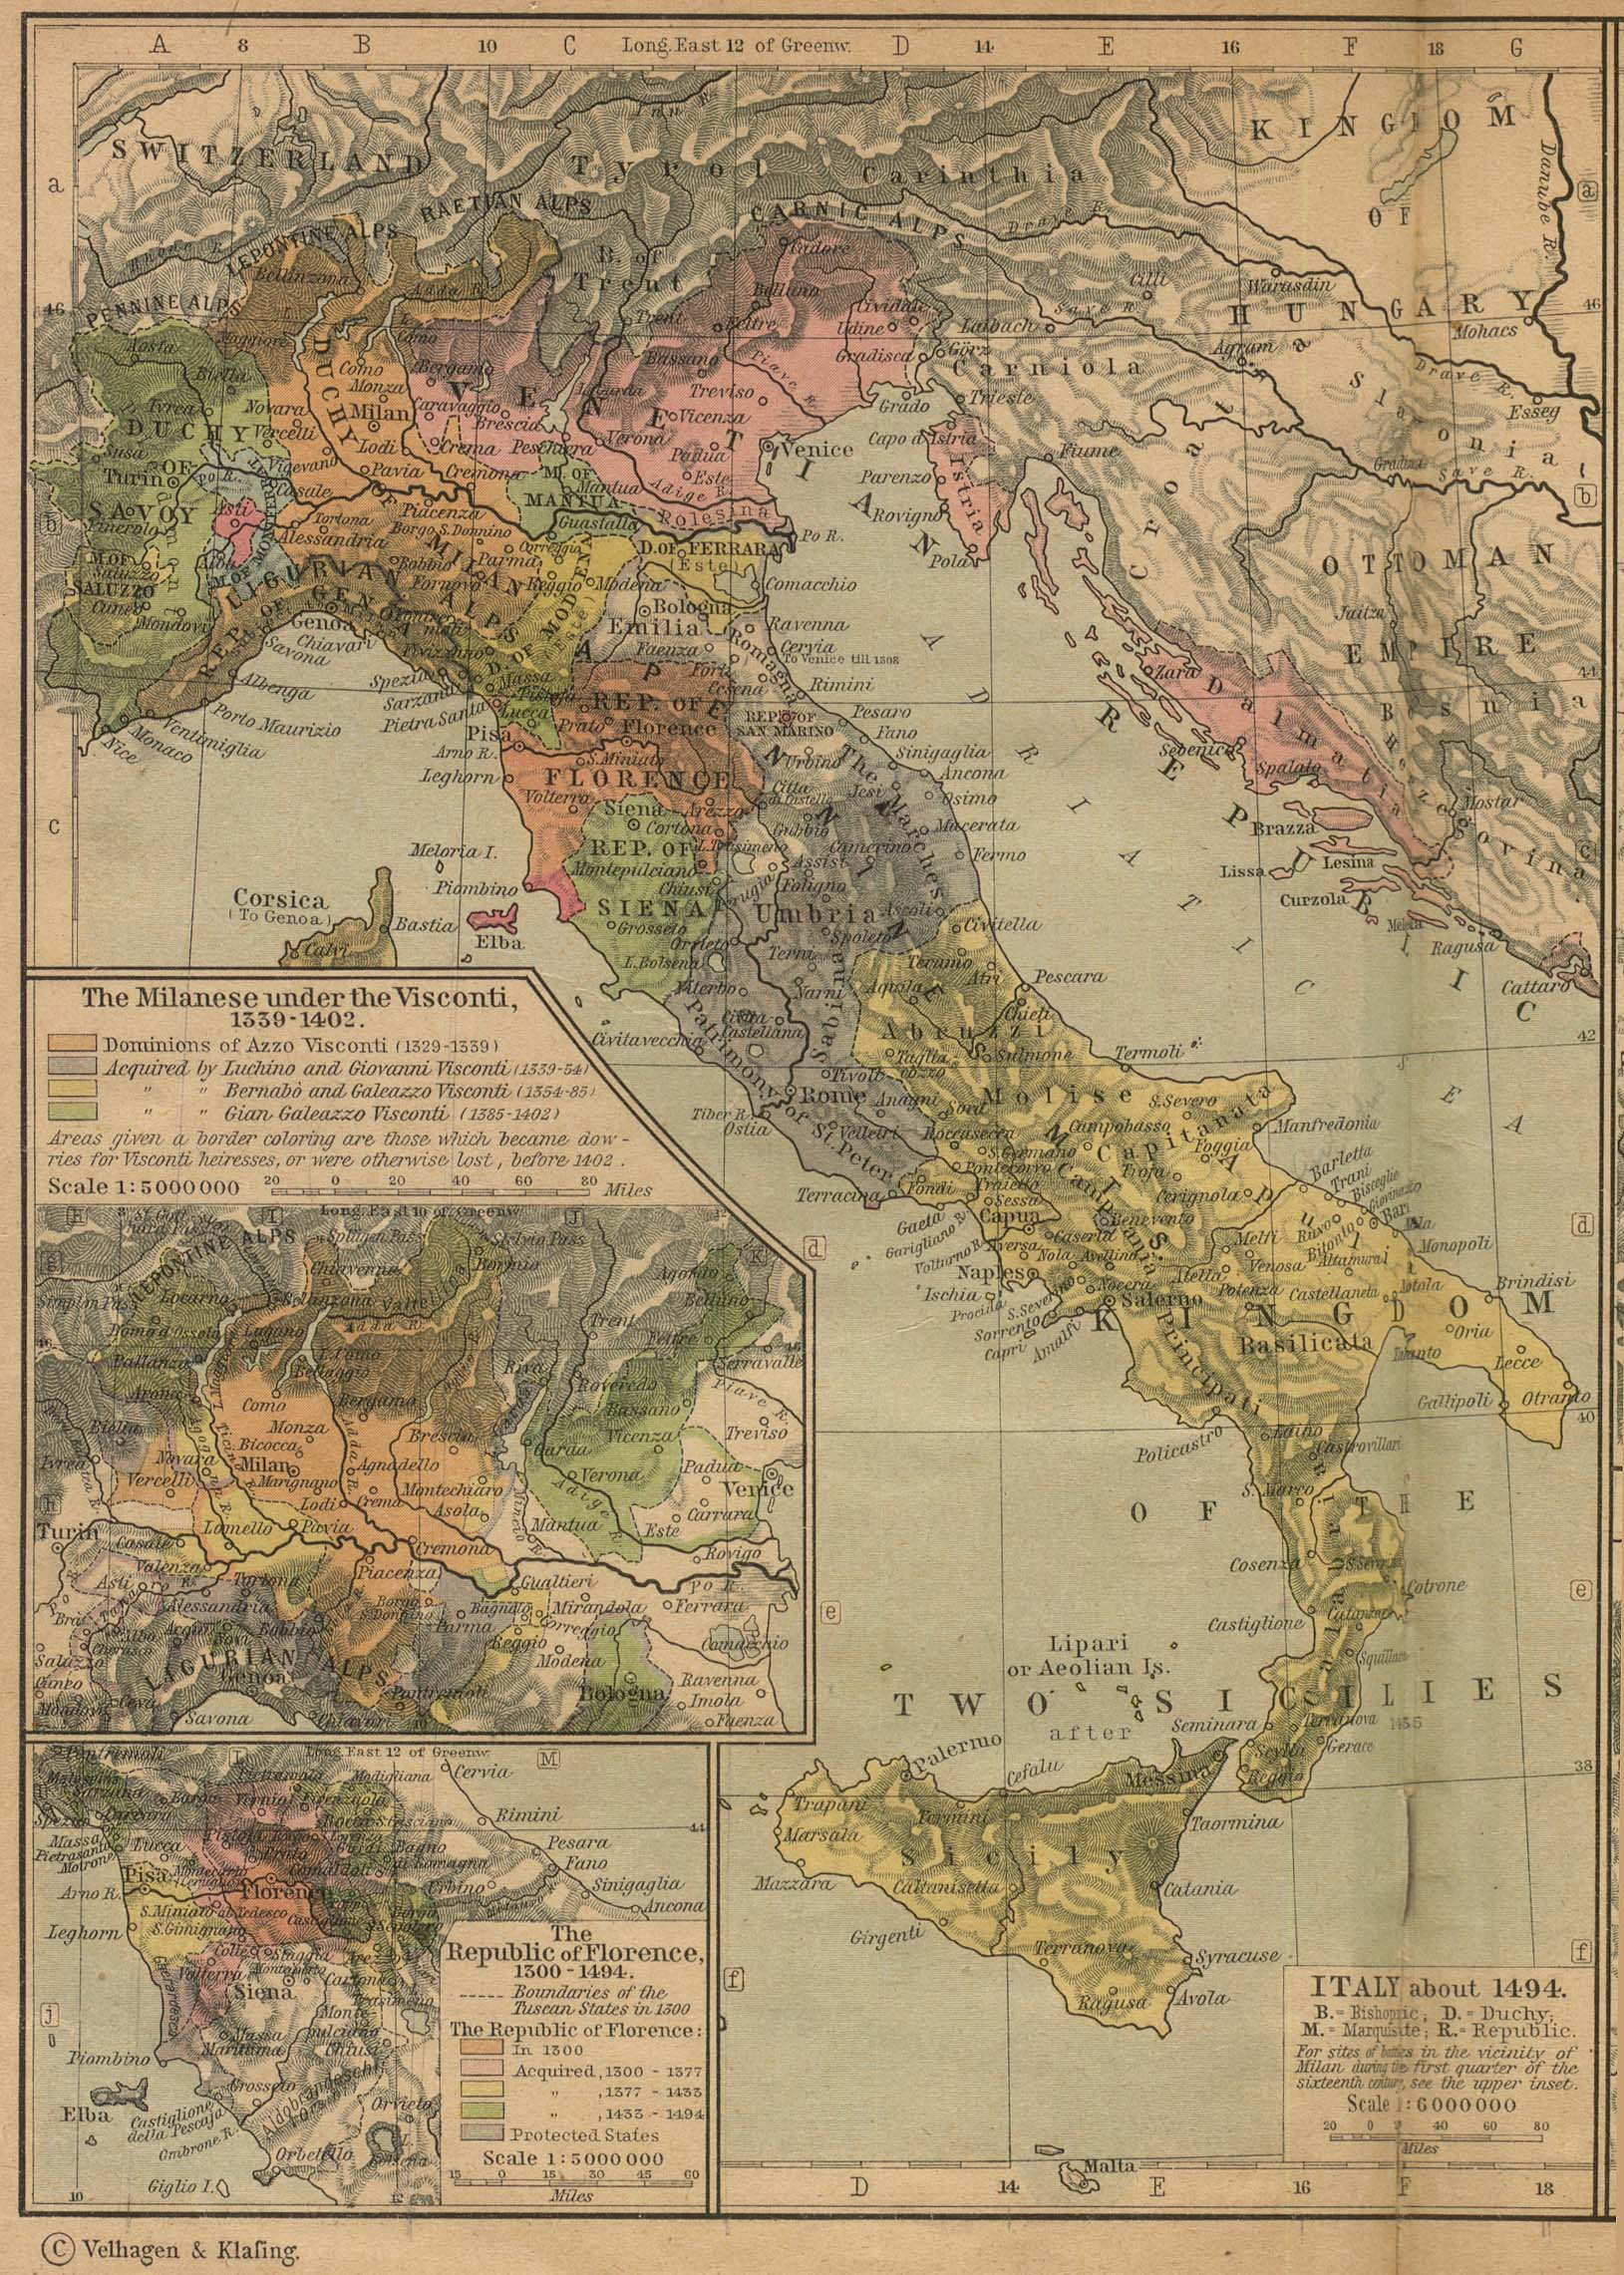 The Renaissance on map of italian resources, map of italian areas, map of italian venice, map of italian kingdoms, map of italian coastal towns, map of italian train stations, map of italian wine regions, map of italian rivers, map of italy states,